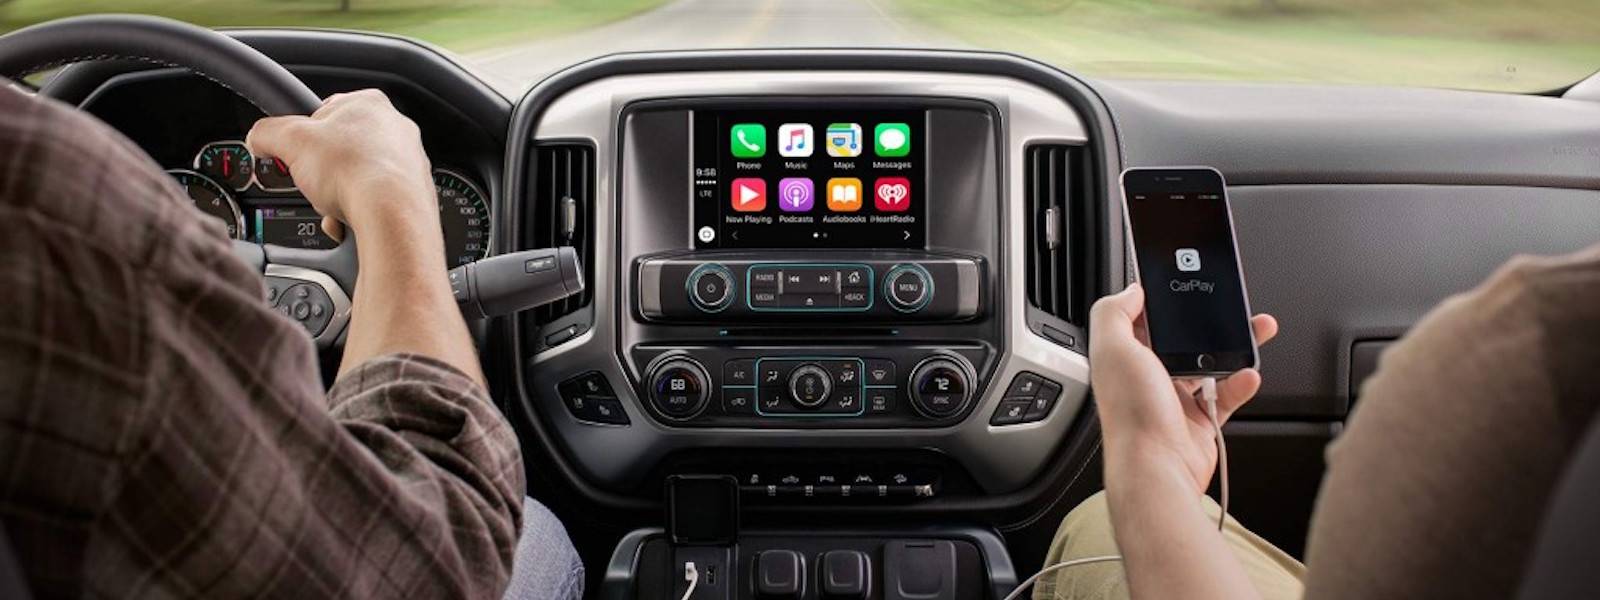 Apple Car Play is being used on a phone in a 2016 Chevy Silverado.